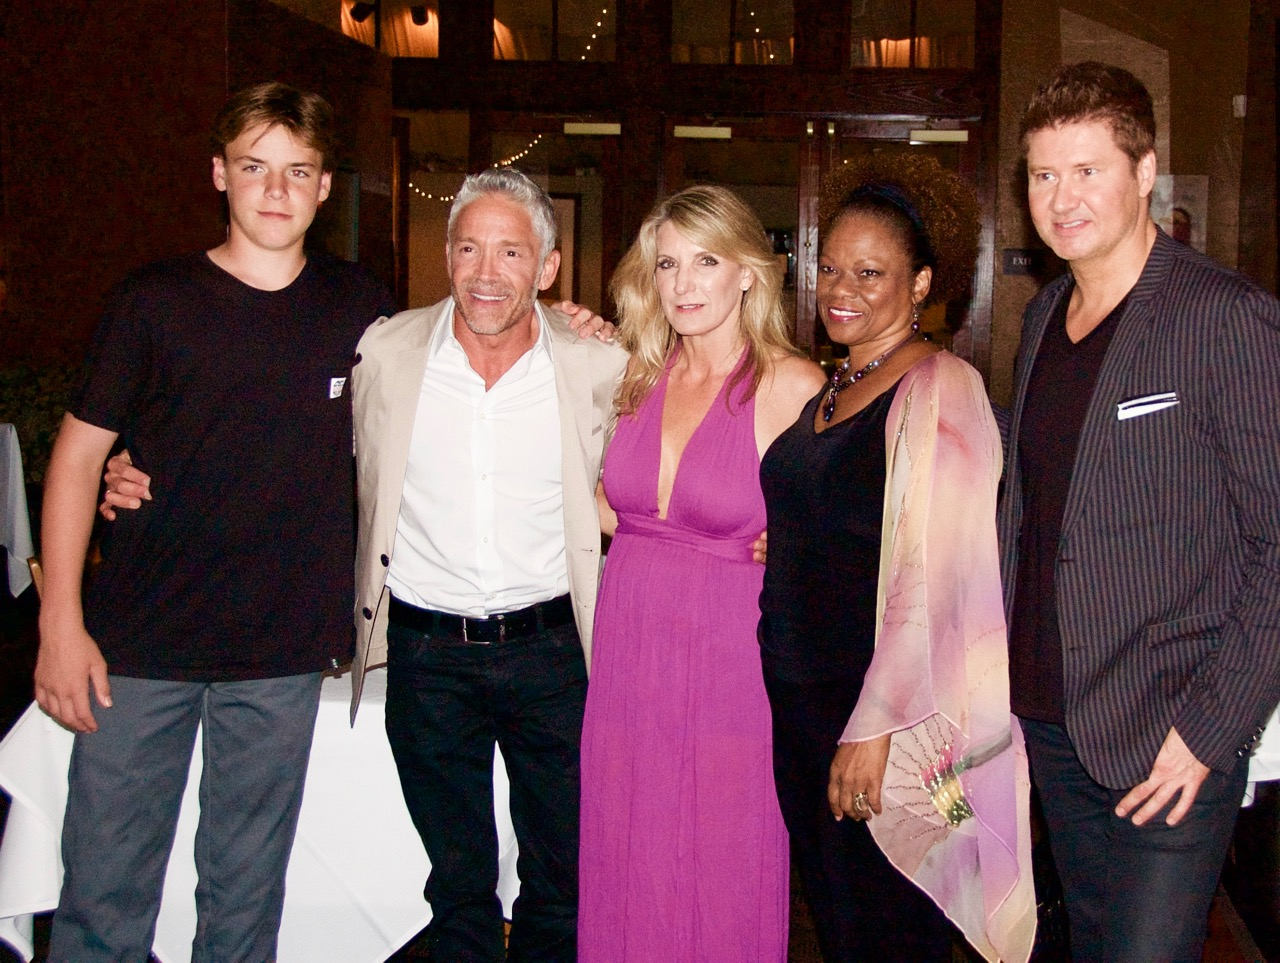 Doyle Family with Dave Koz, Pat Prescott, & Michael Lington